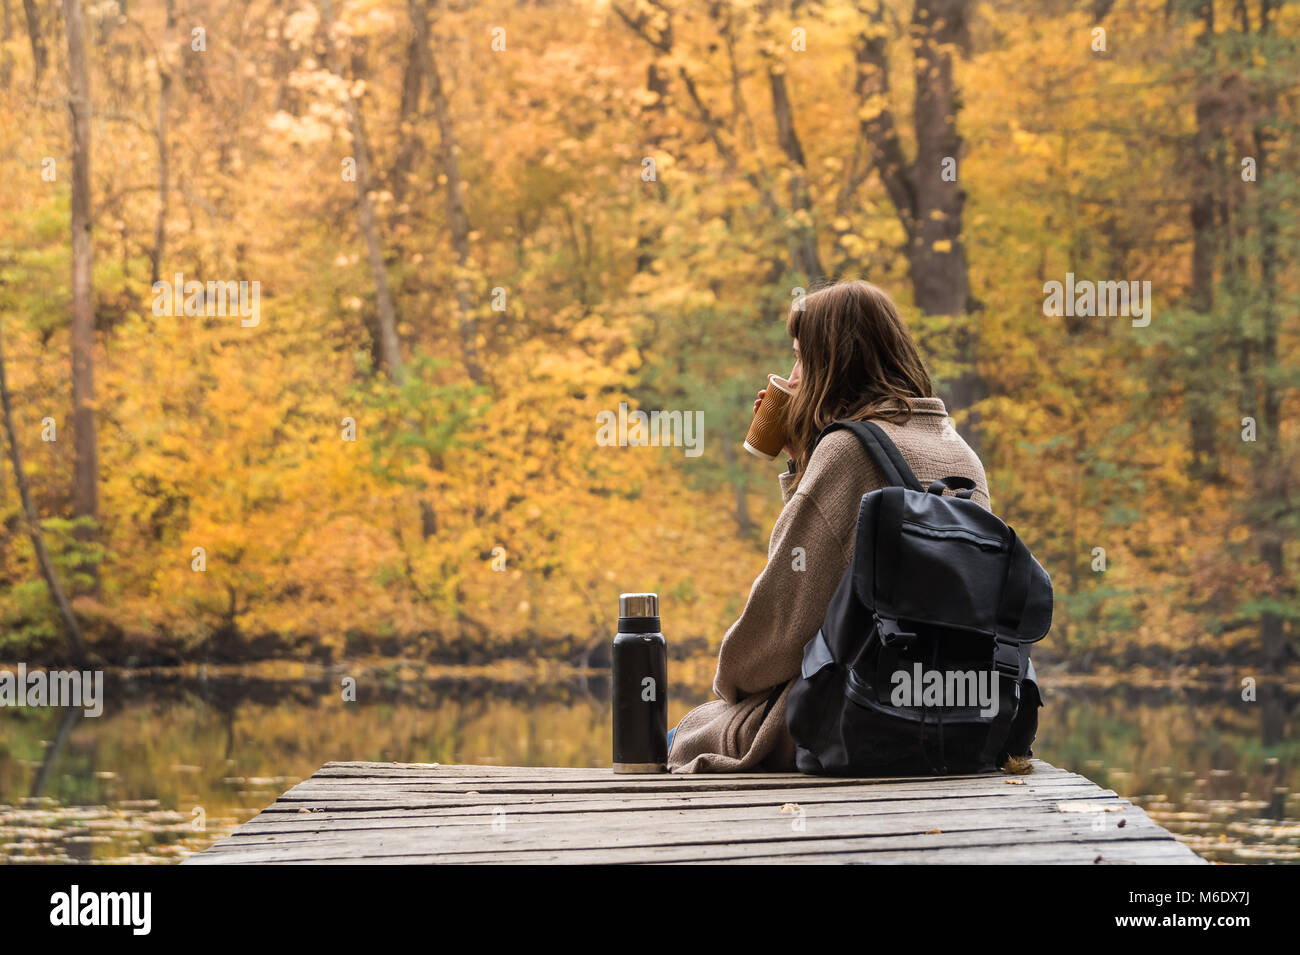 Girl having rest and hot drink from thermos near the lake at a nature park on a gold autumn day Stock Photo